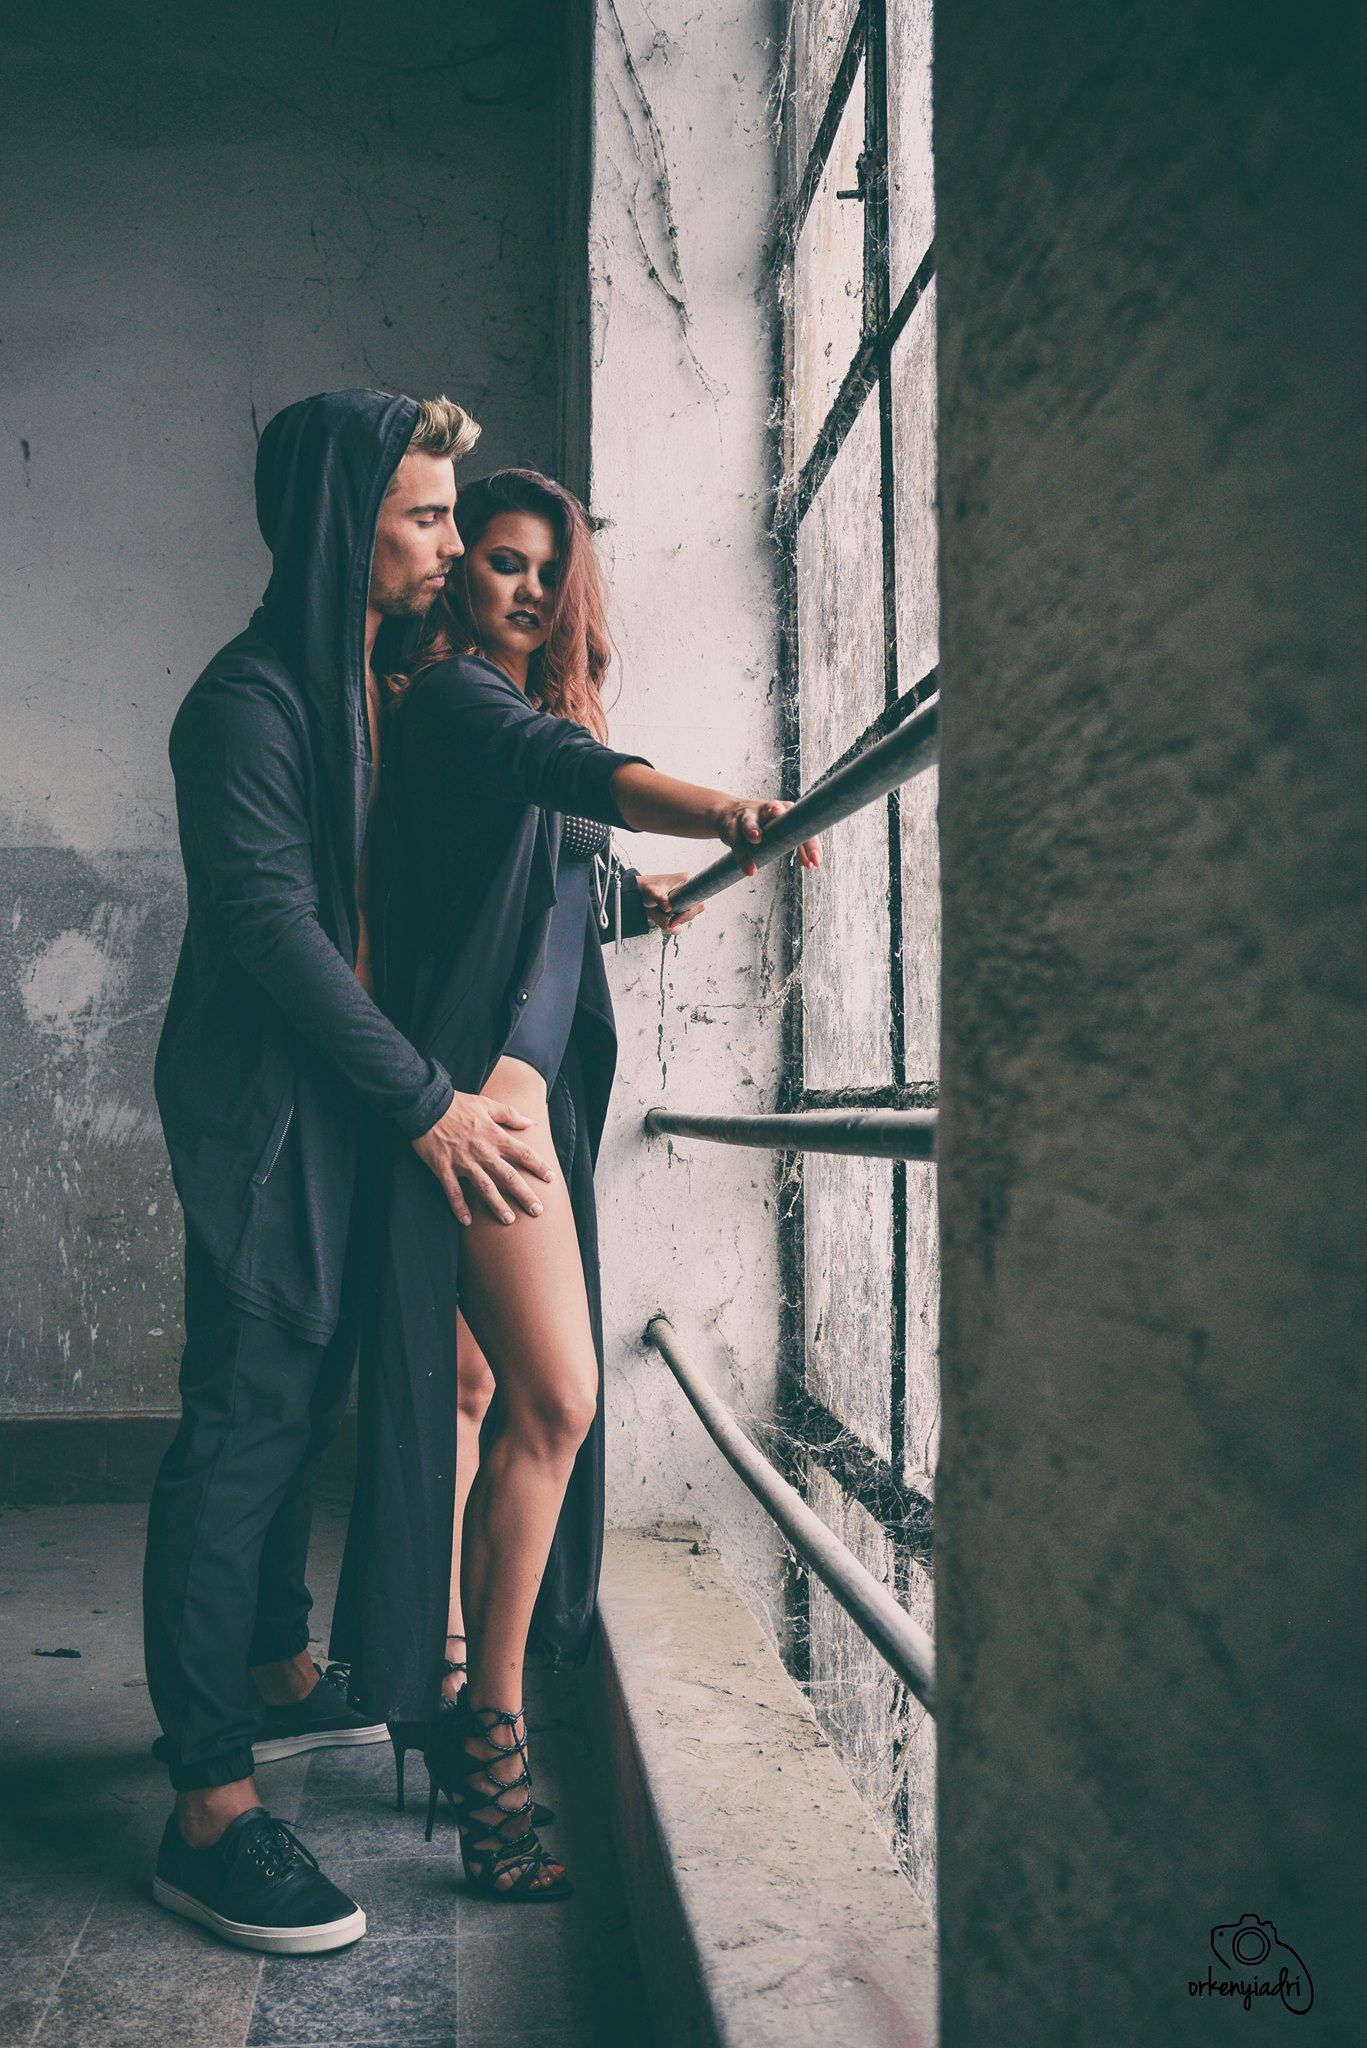 couple photography pair ootd outfit fashion glamour divat trend black white budapest girl boy woman men shirt skirt studio elegance dance dancing choreography sexy jumpsuit highheels